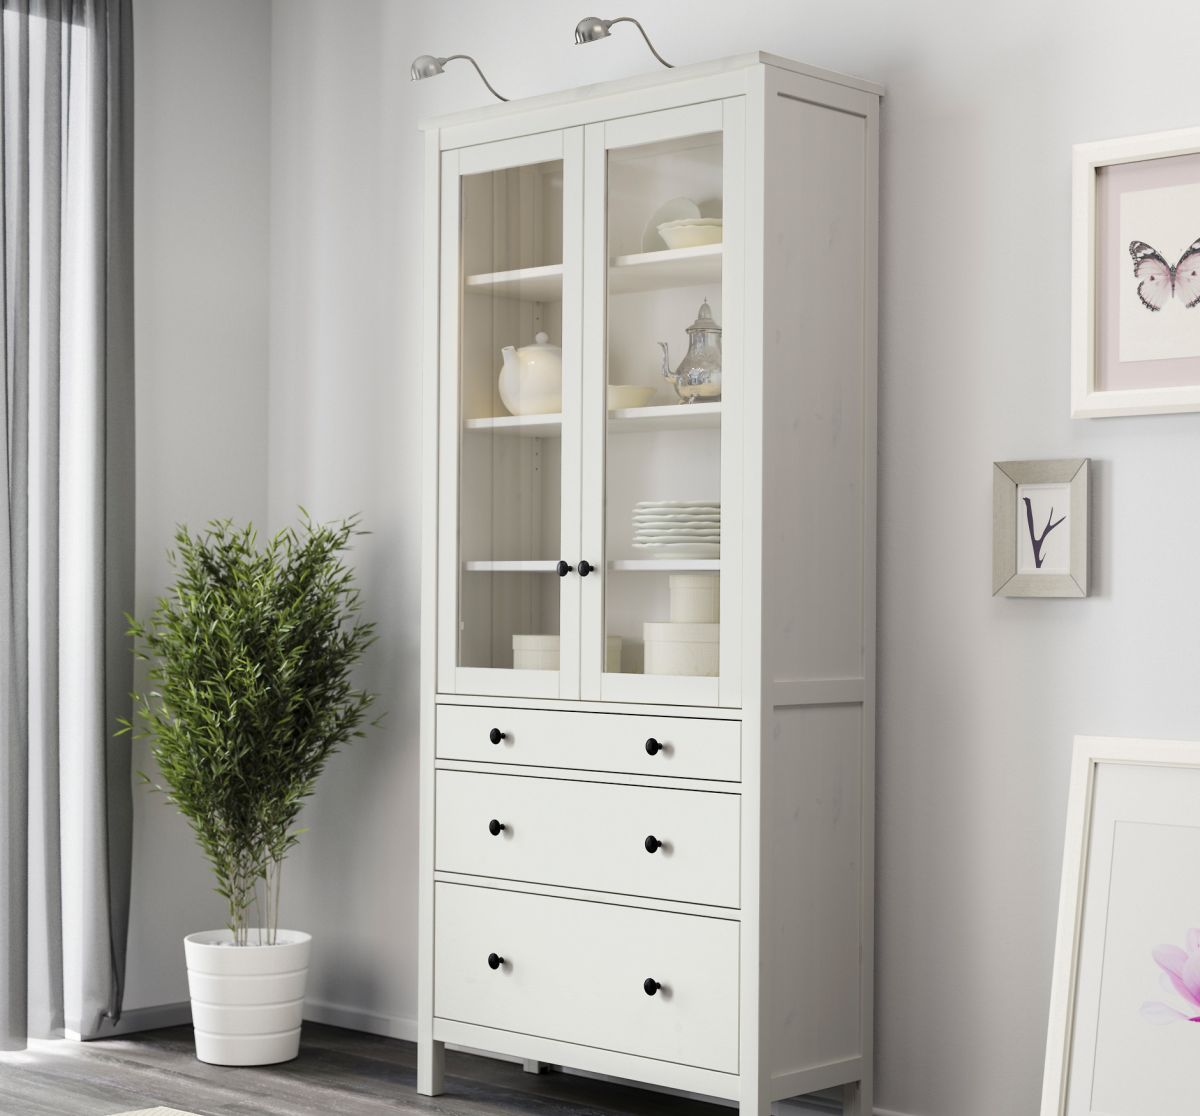 Shabby cabinet plus drawers